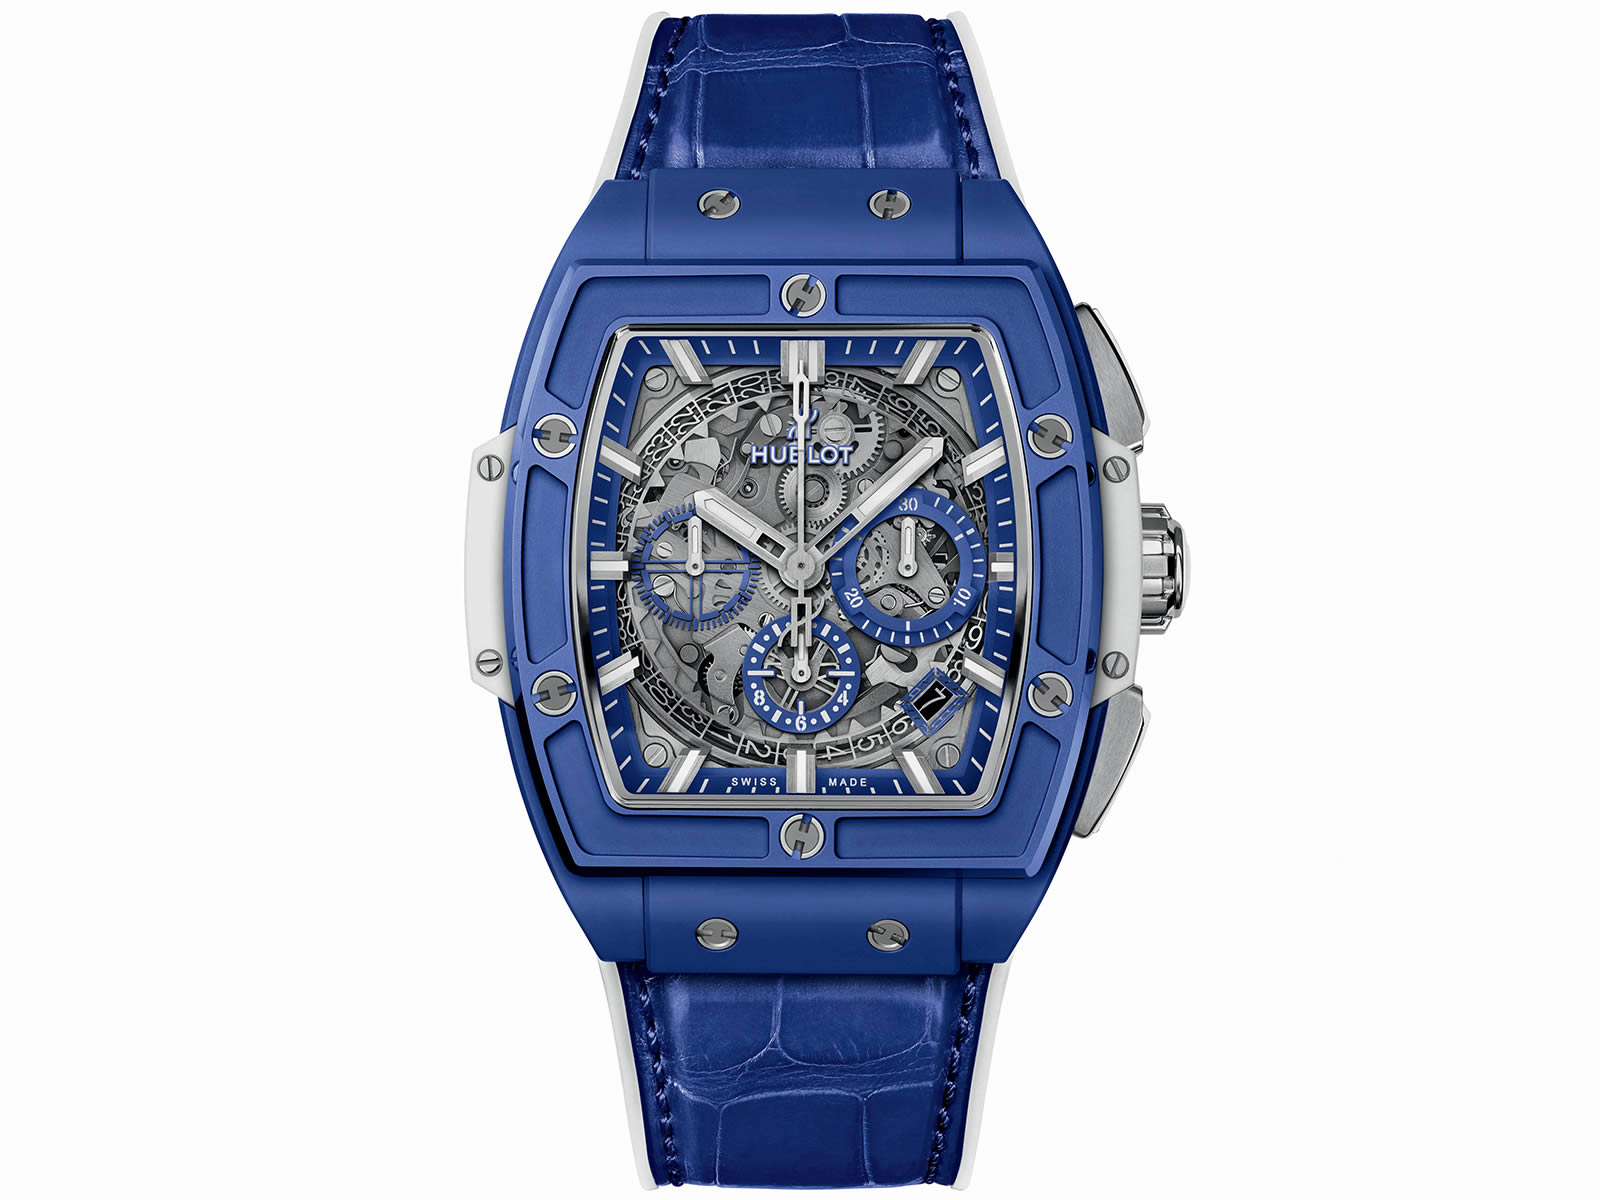 641-ex-5129-lr-hublot-spirit-of-big-bang-blue-8-.jpg